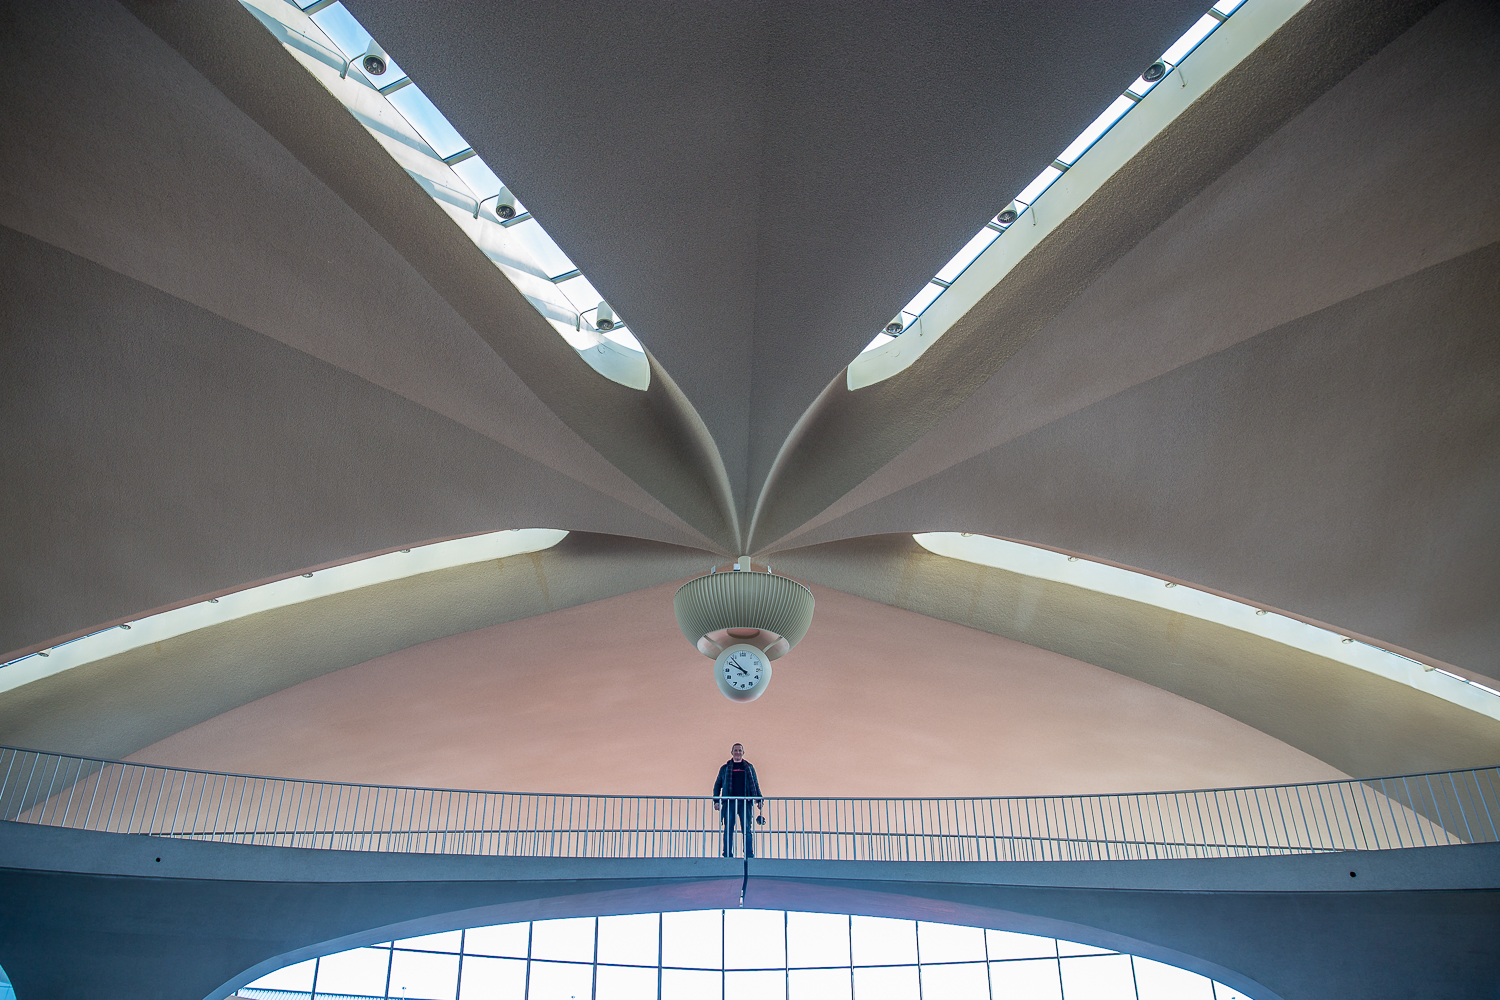 TWA-flight-center-jfk-photography-4.jpg